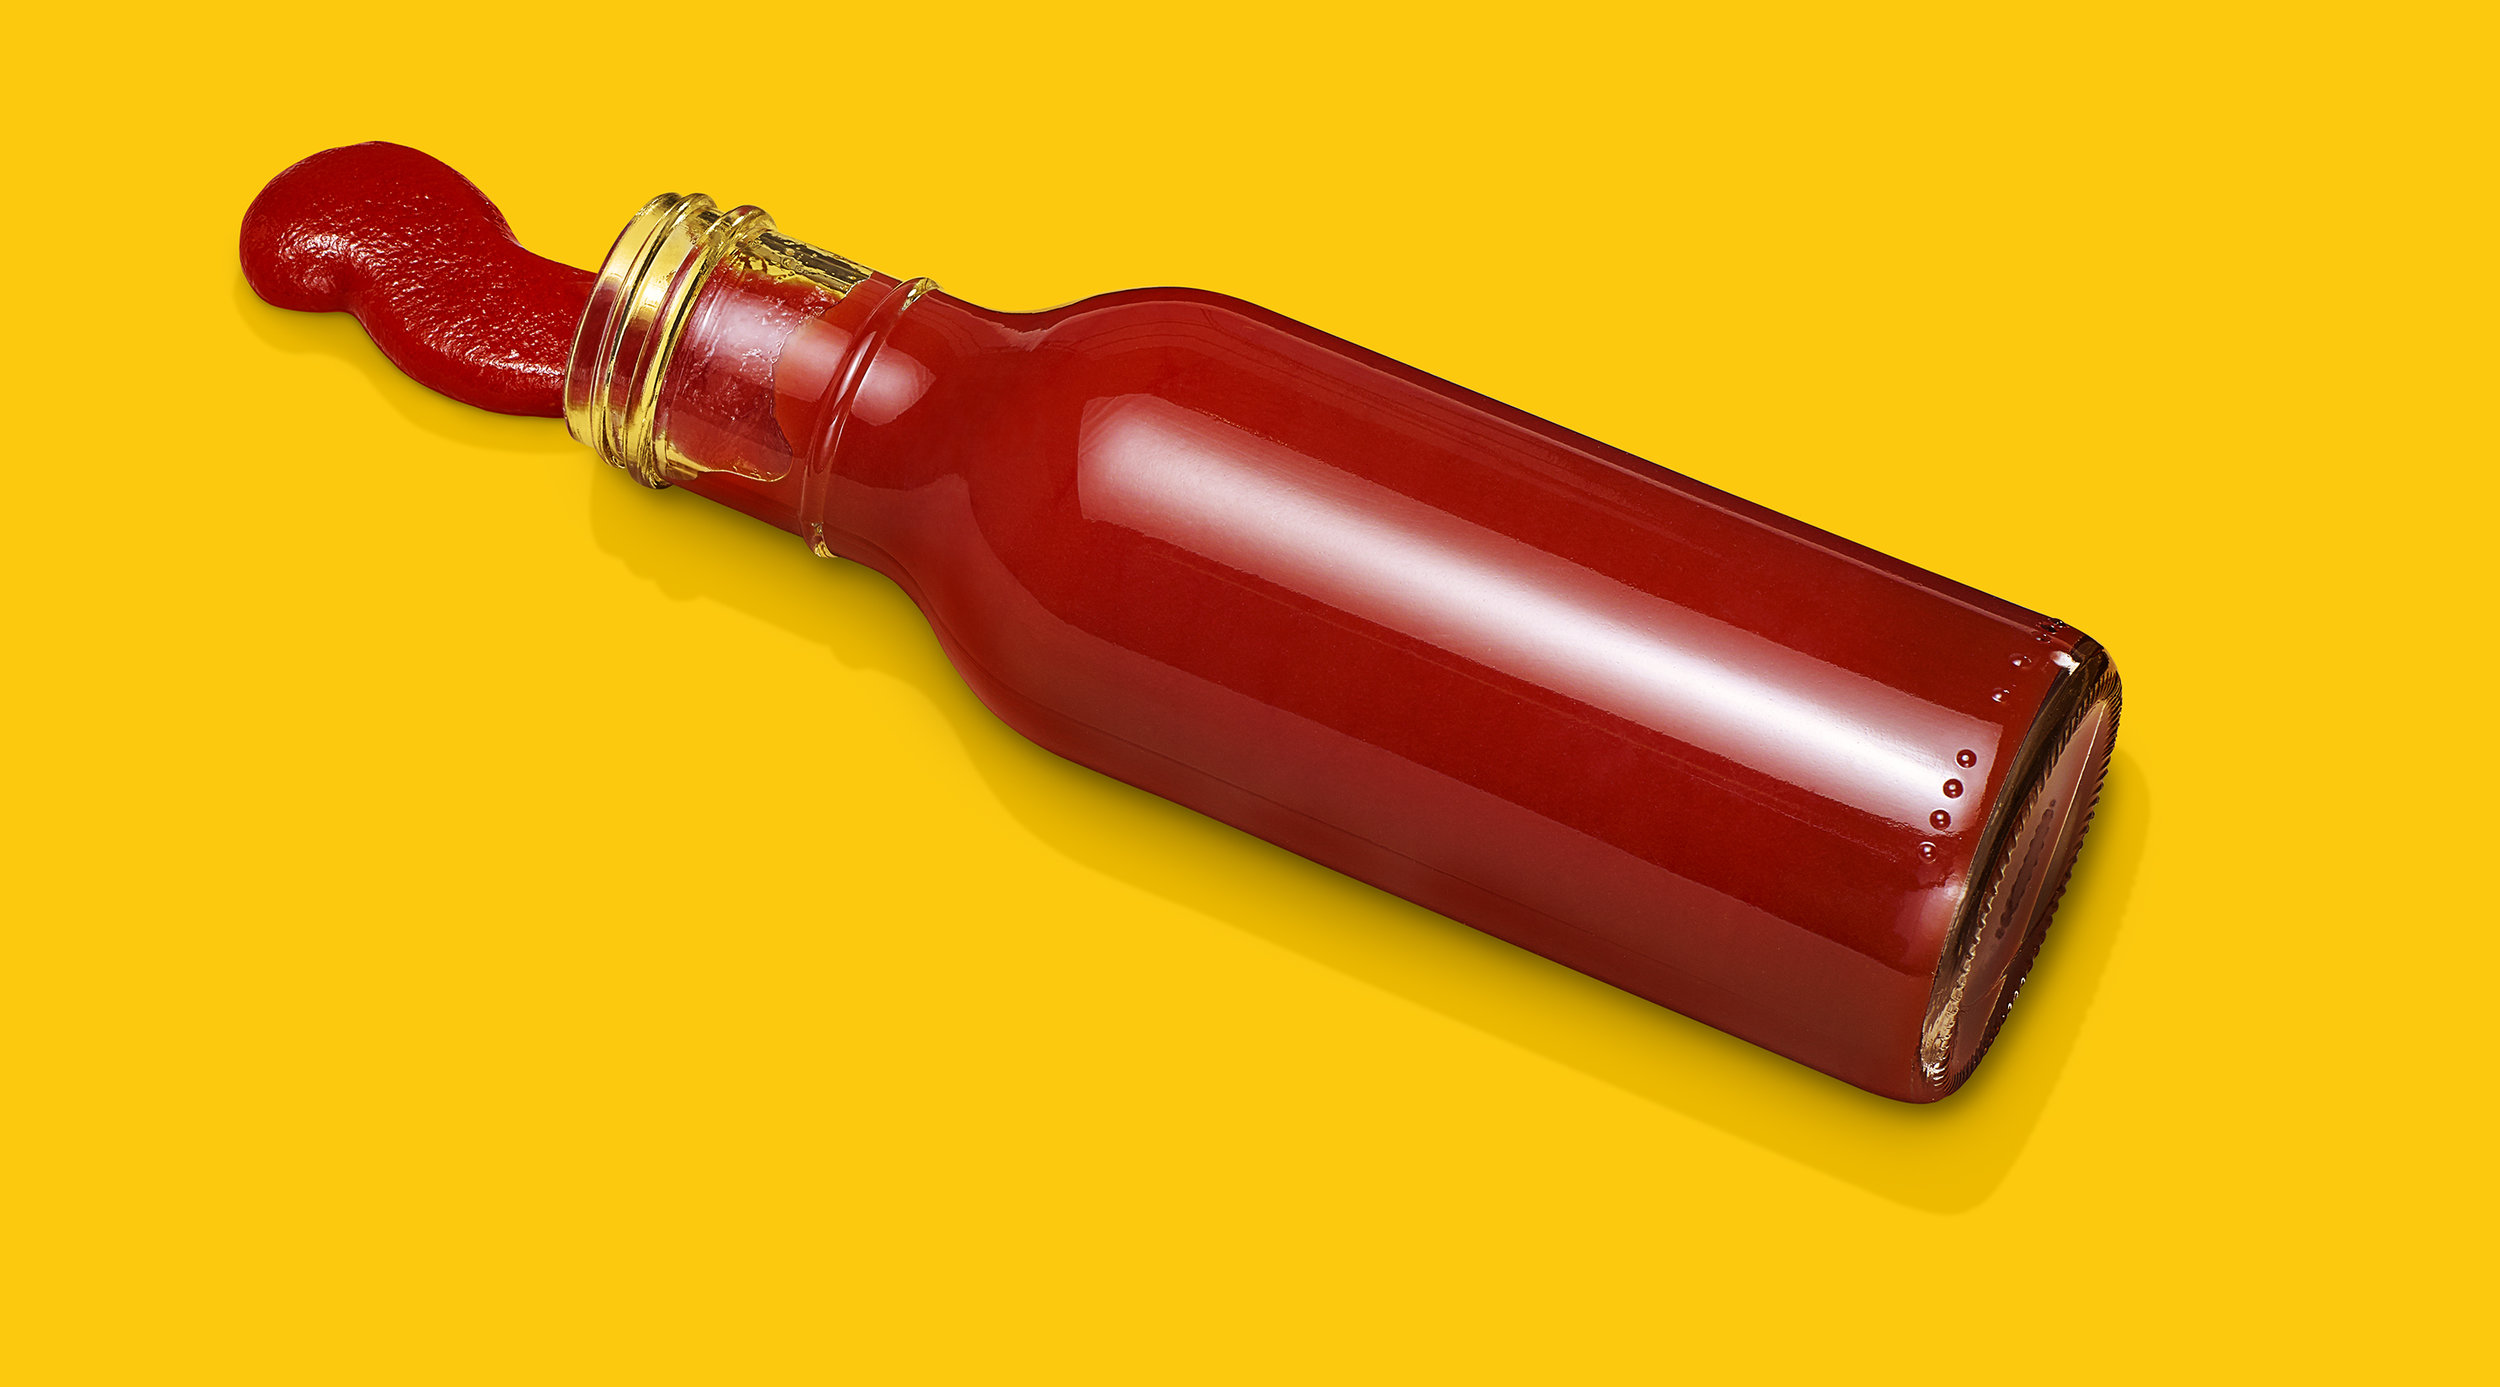 1803_Ball_Park_Ingredients_Ketchup_Bottle_0245_preview_R1.jpg